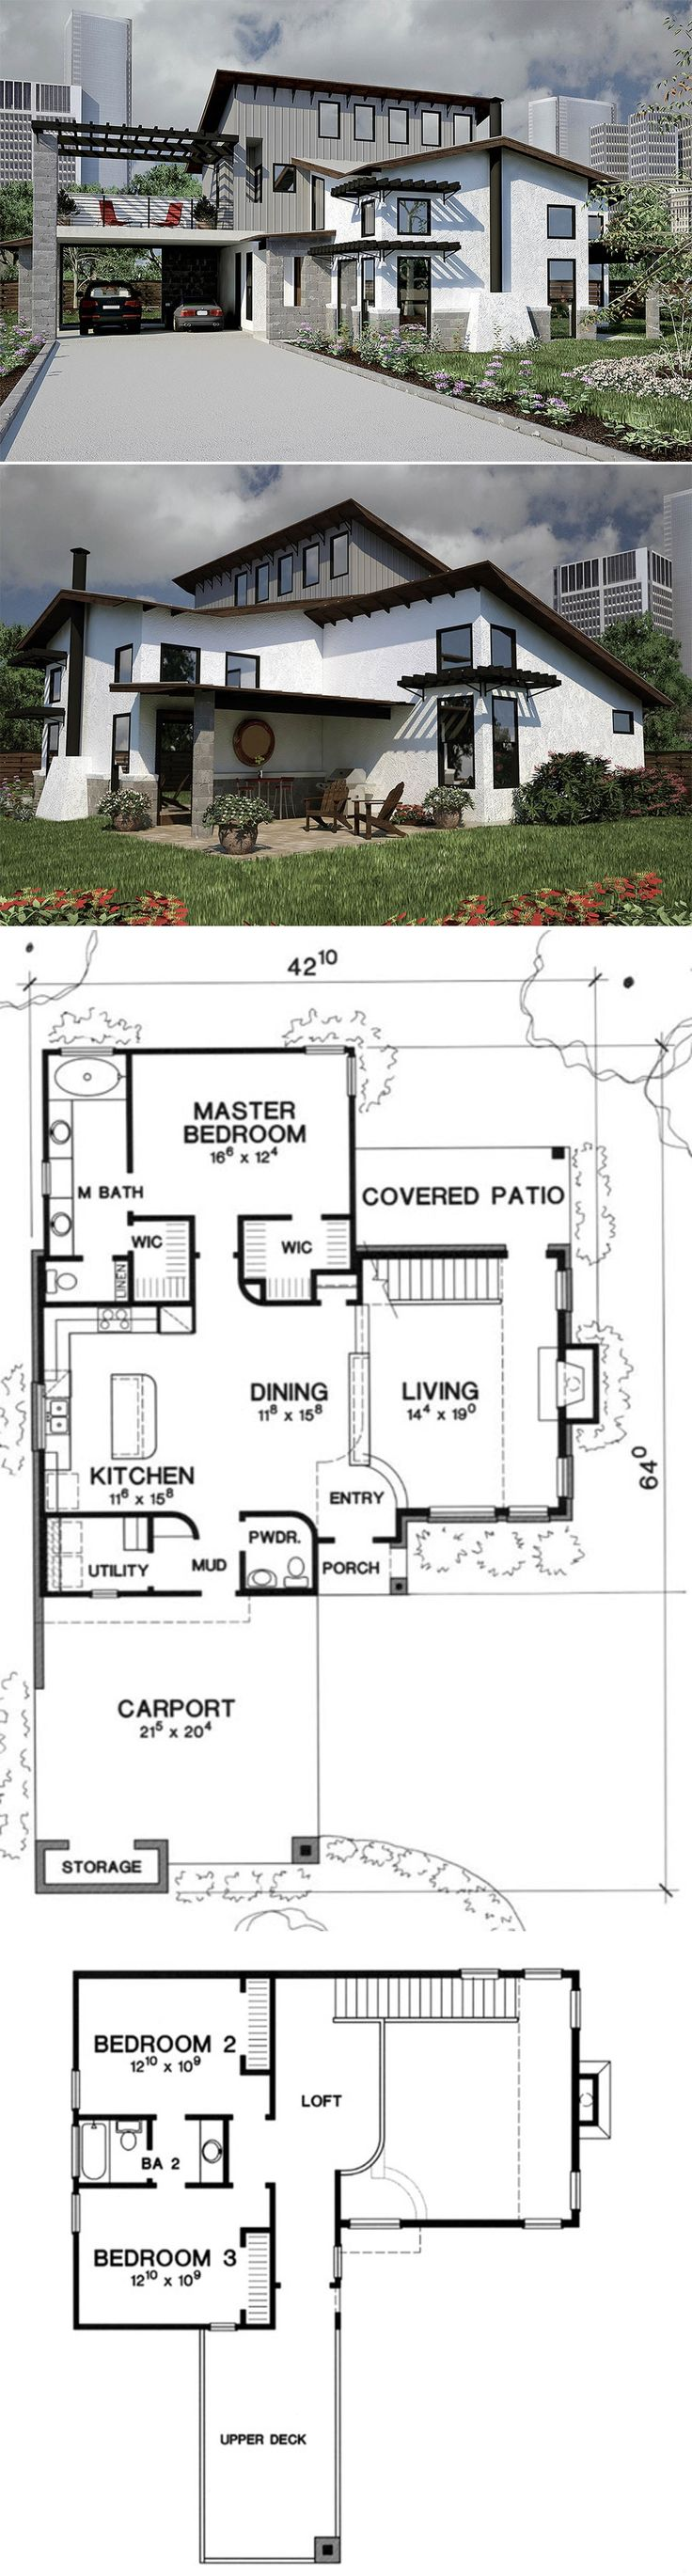 The Beach House In Somethings Gotta Give besides Ranch Home Interior Design Ideas furthermore Interior Design Movies furthermore Idea Kitchen Interior Design Greige besides Epiphany Floor Plan. on its plicated house